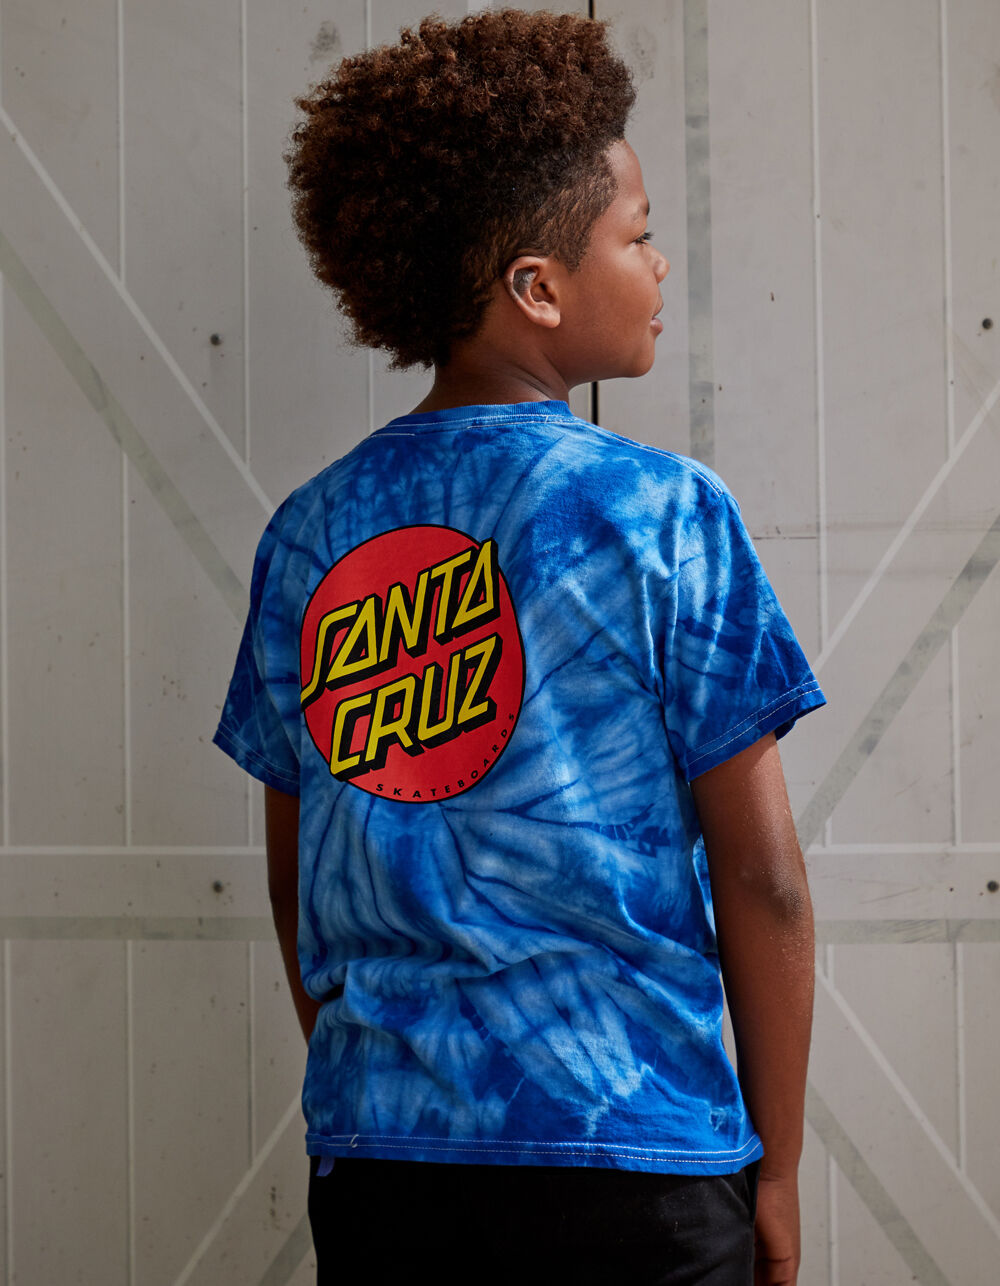 SANTA CRUZ Classic Dot Blue Boys T-Shirt